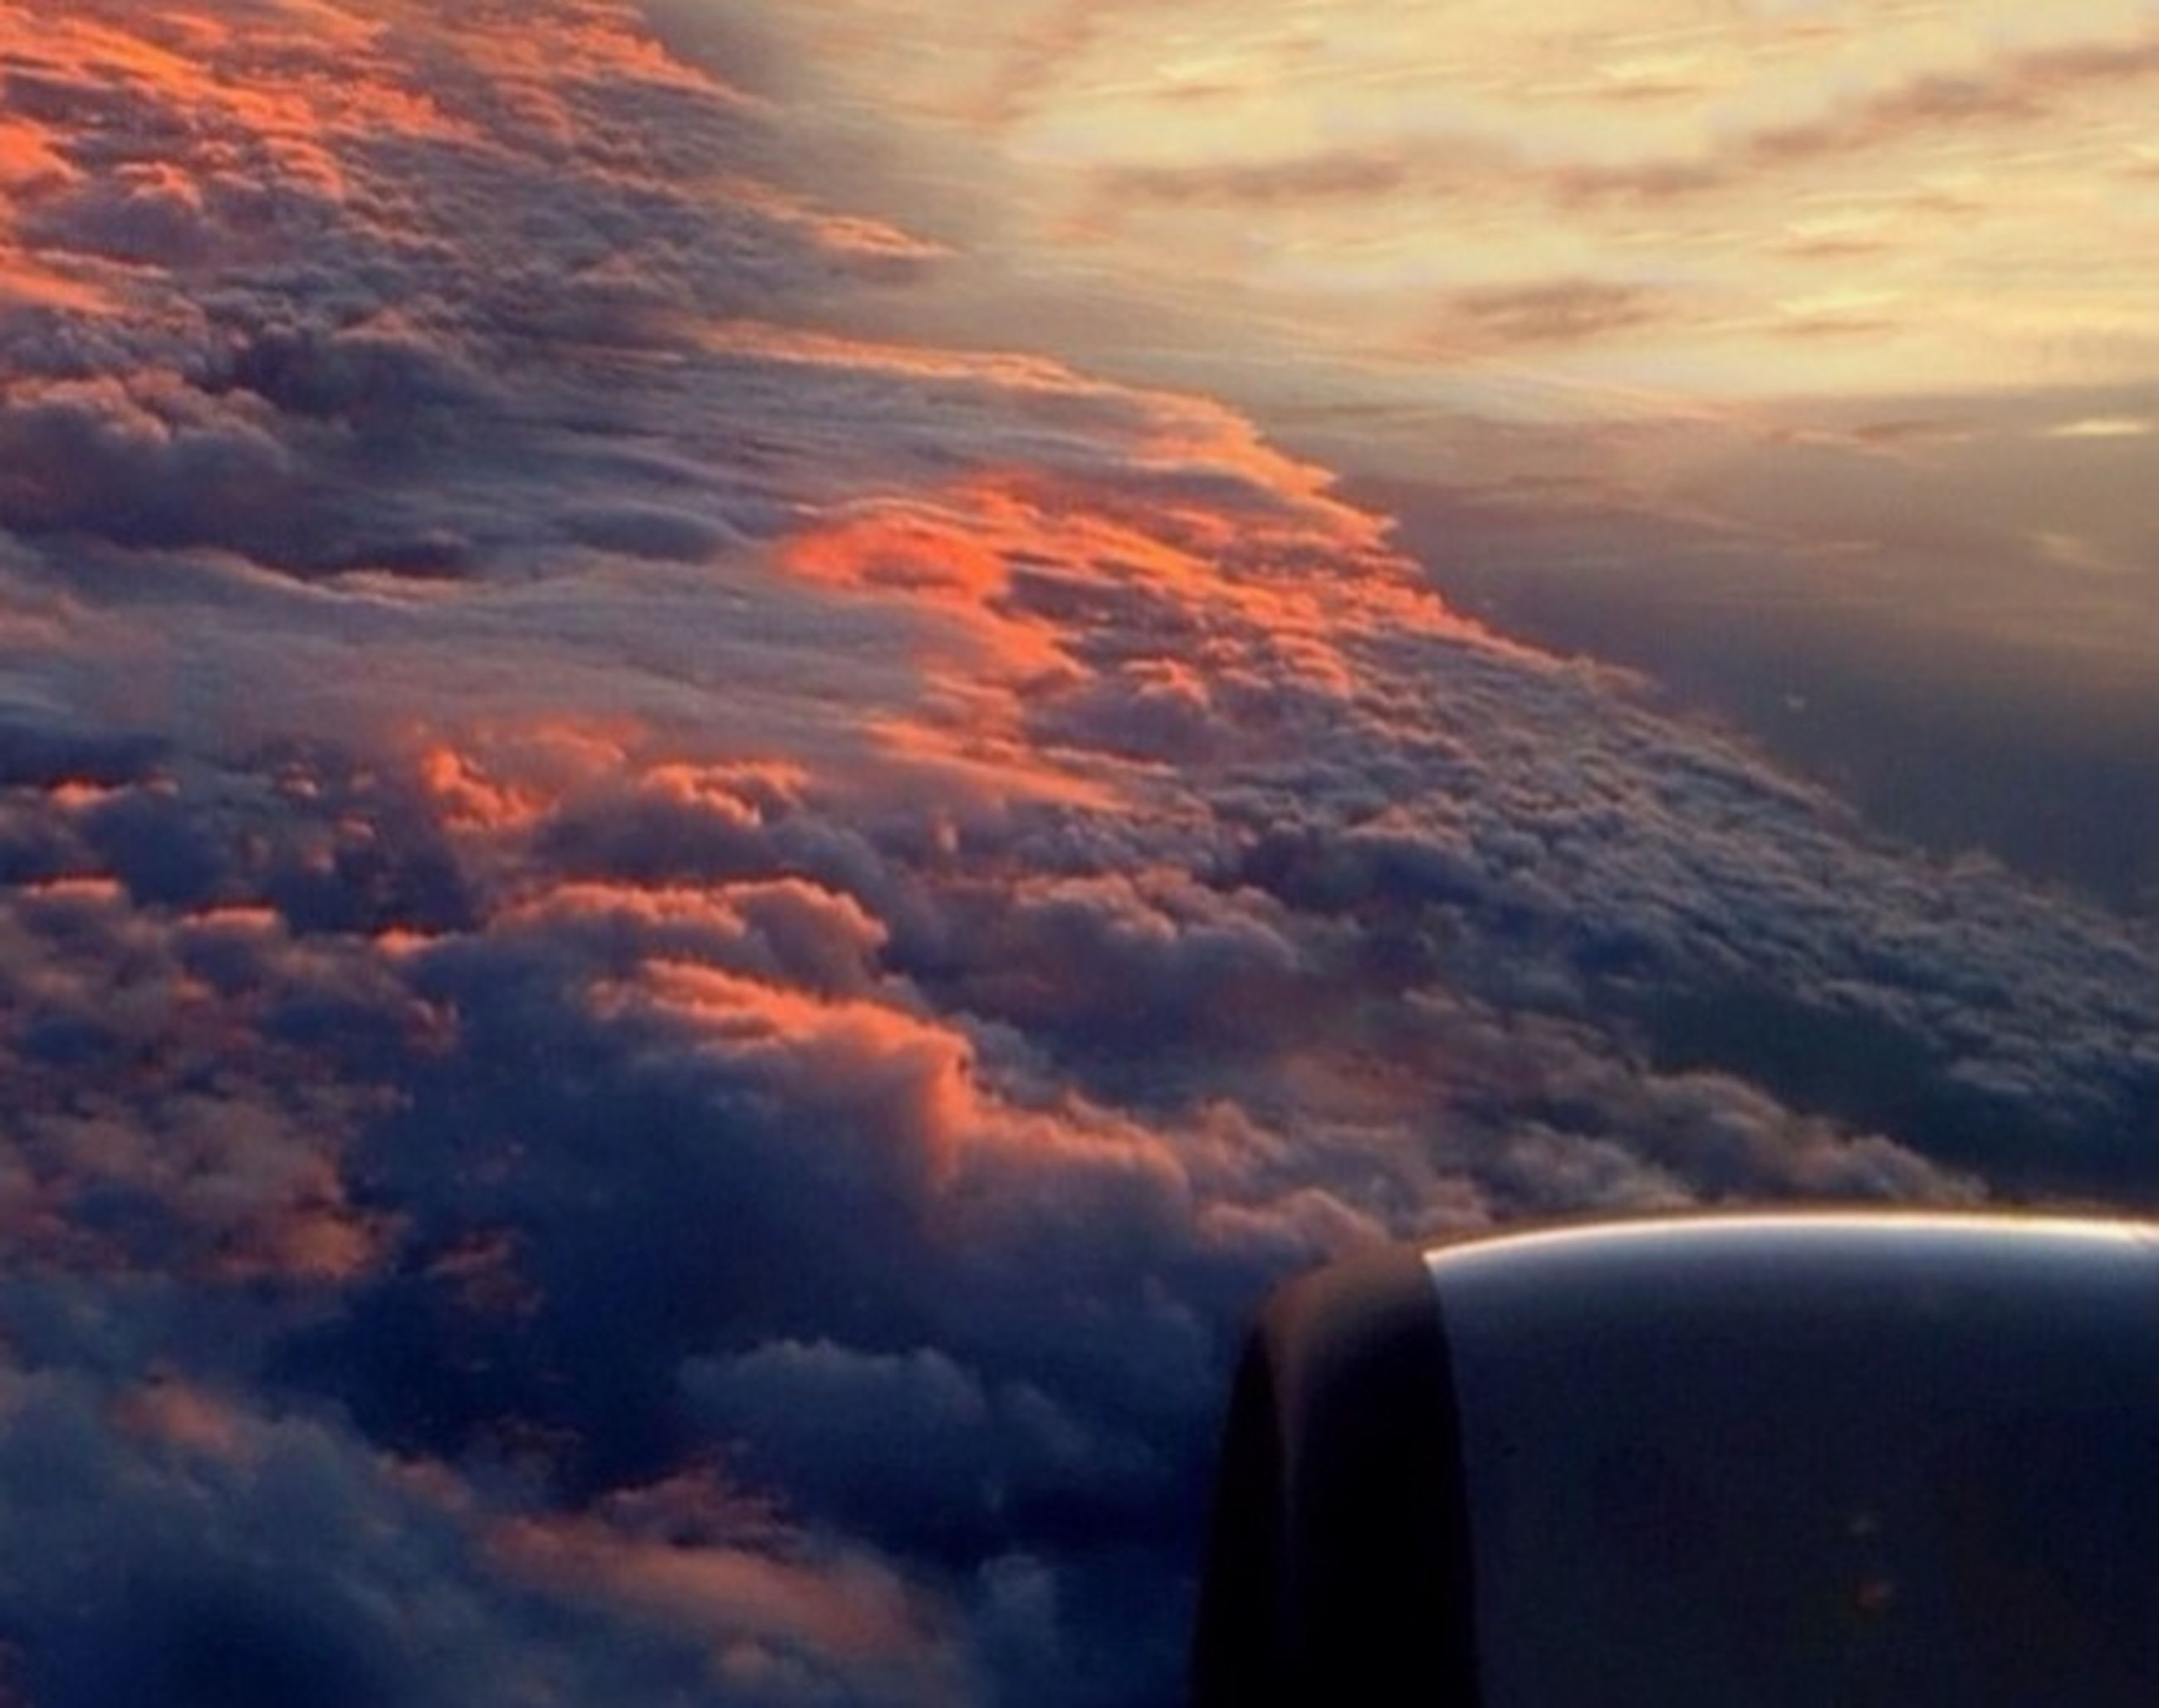 sunset, sky, cloud - sky, cloudscape, cloud, orange color, scenics, beauty in nature, part of, cloudy, dramatic sky, nature, tranquil scene, tranquility, cropped, airplane, idyllic, no people, weather, outdoors